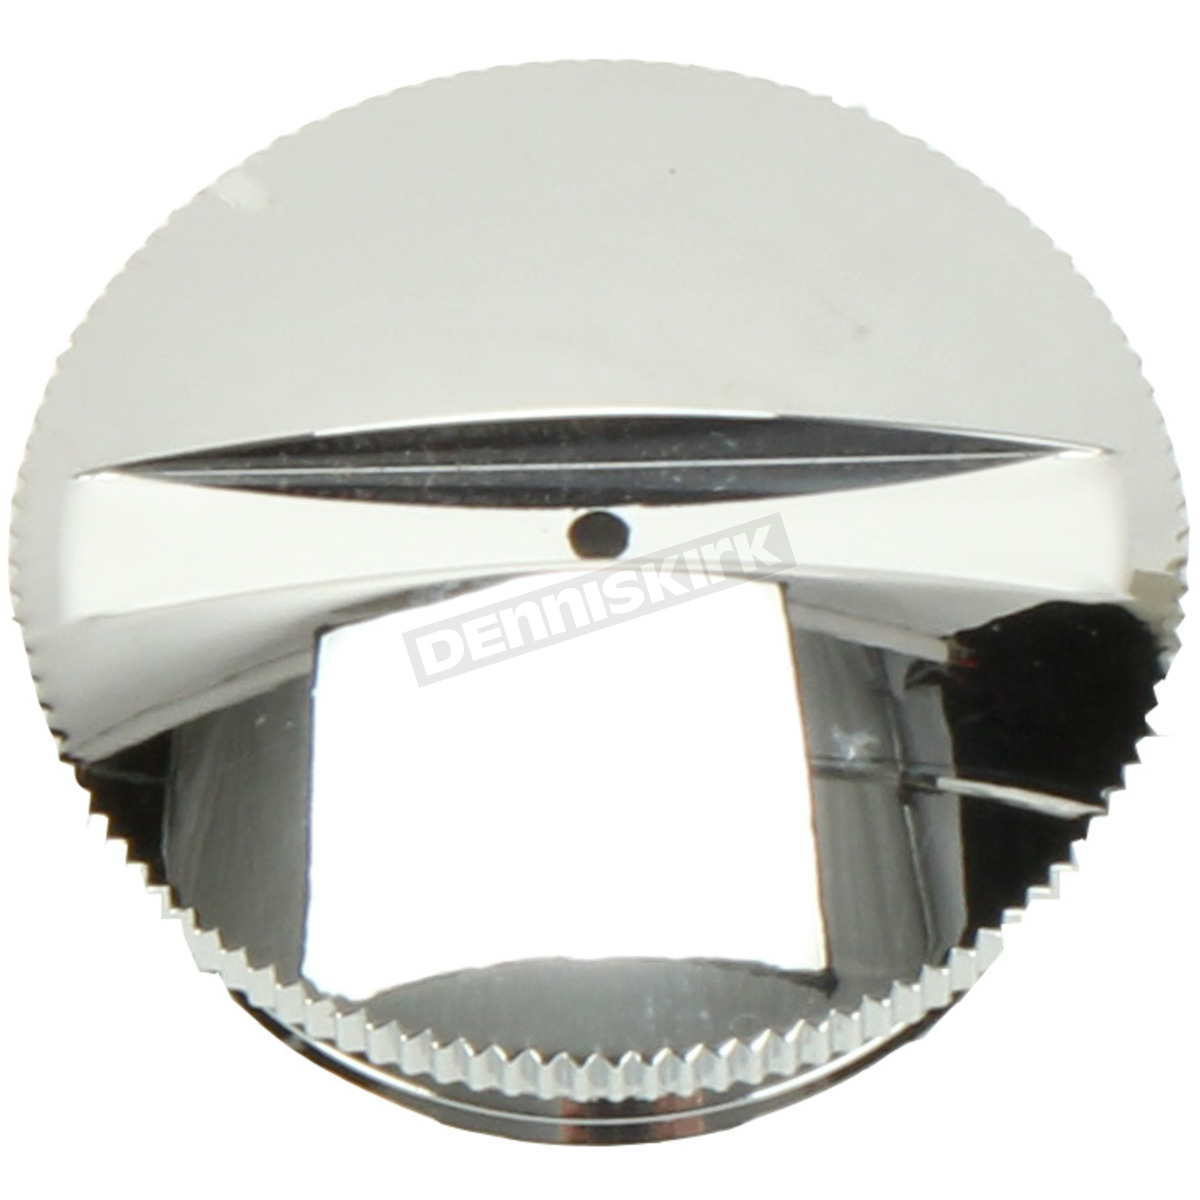 Primary Cover Cap Set Chrome for Harley Davidson by V-Twin